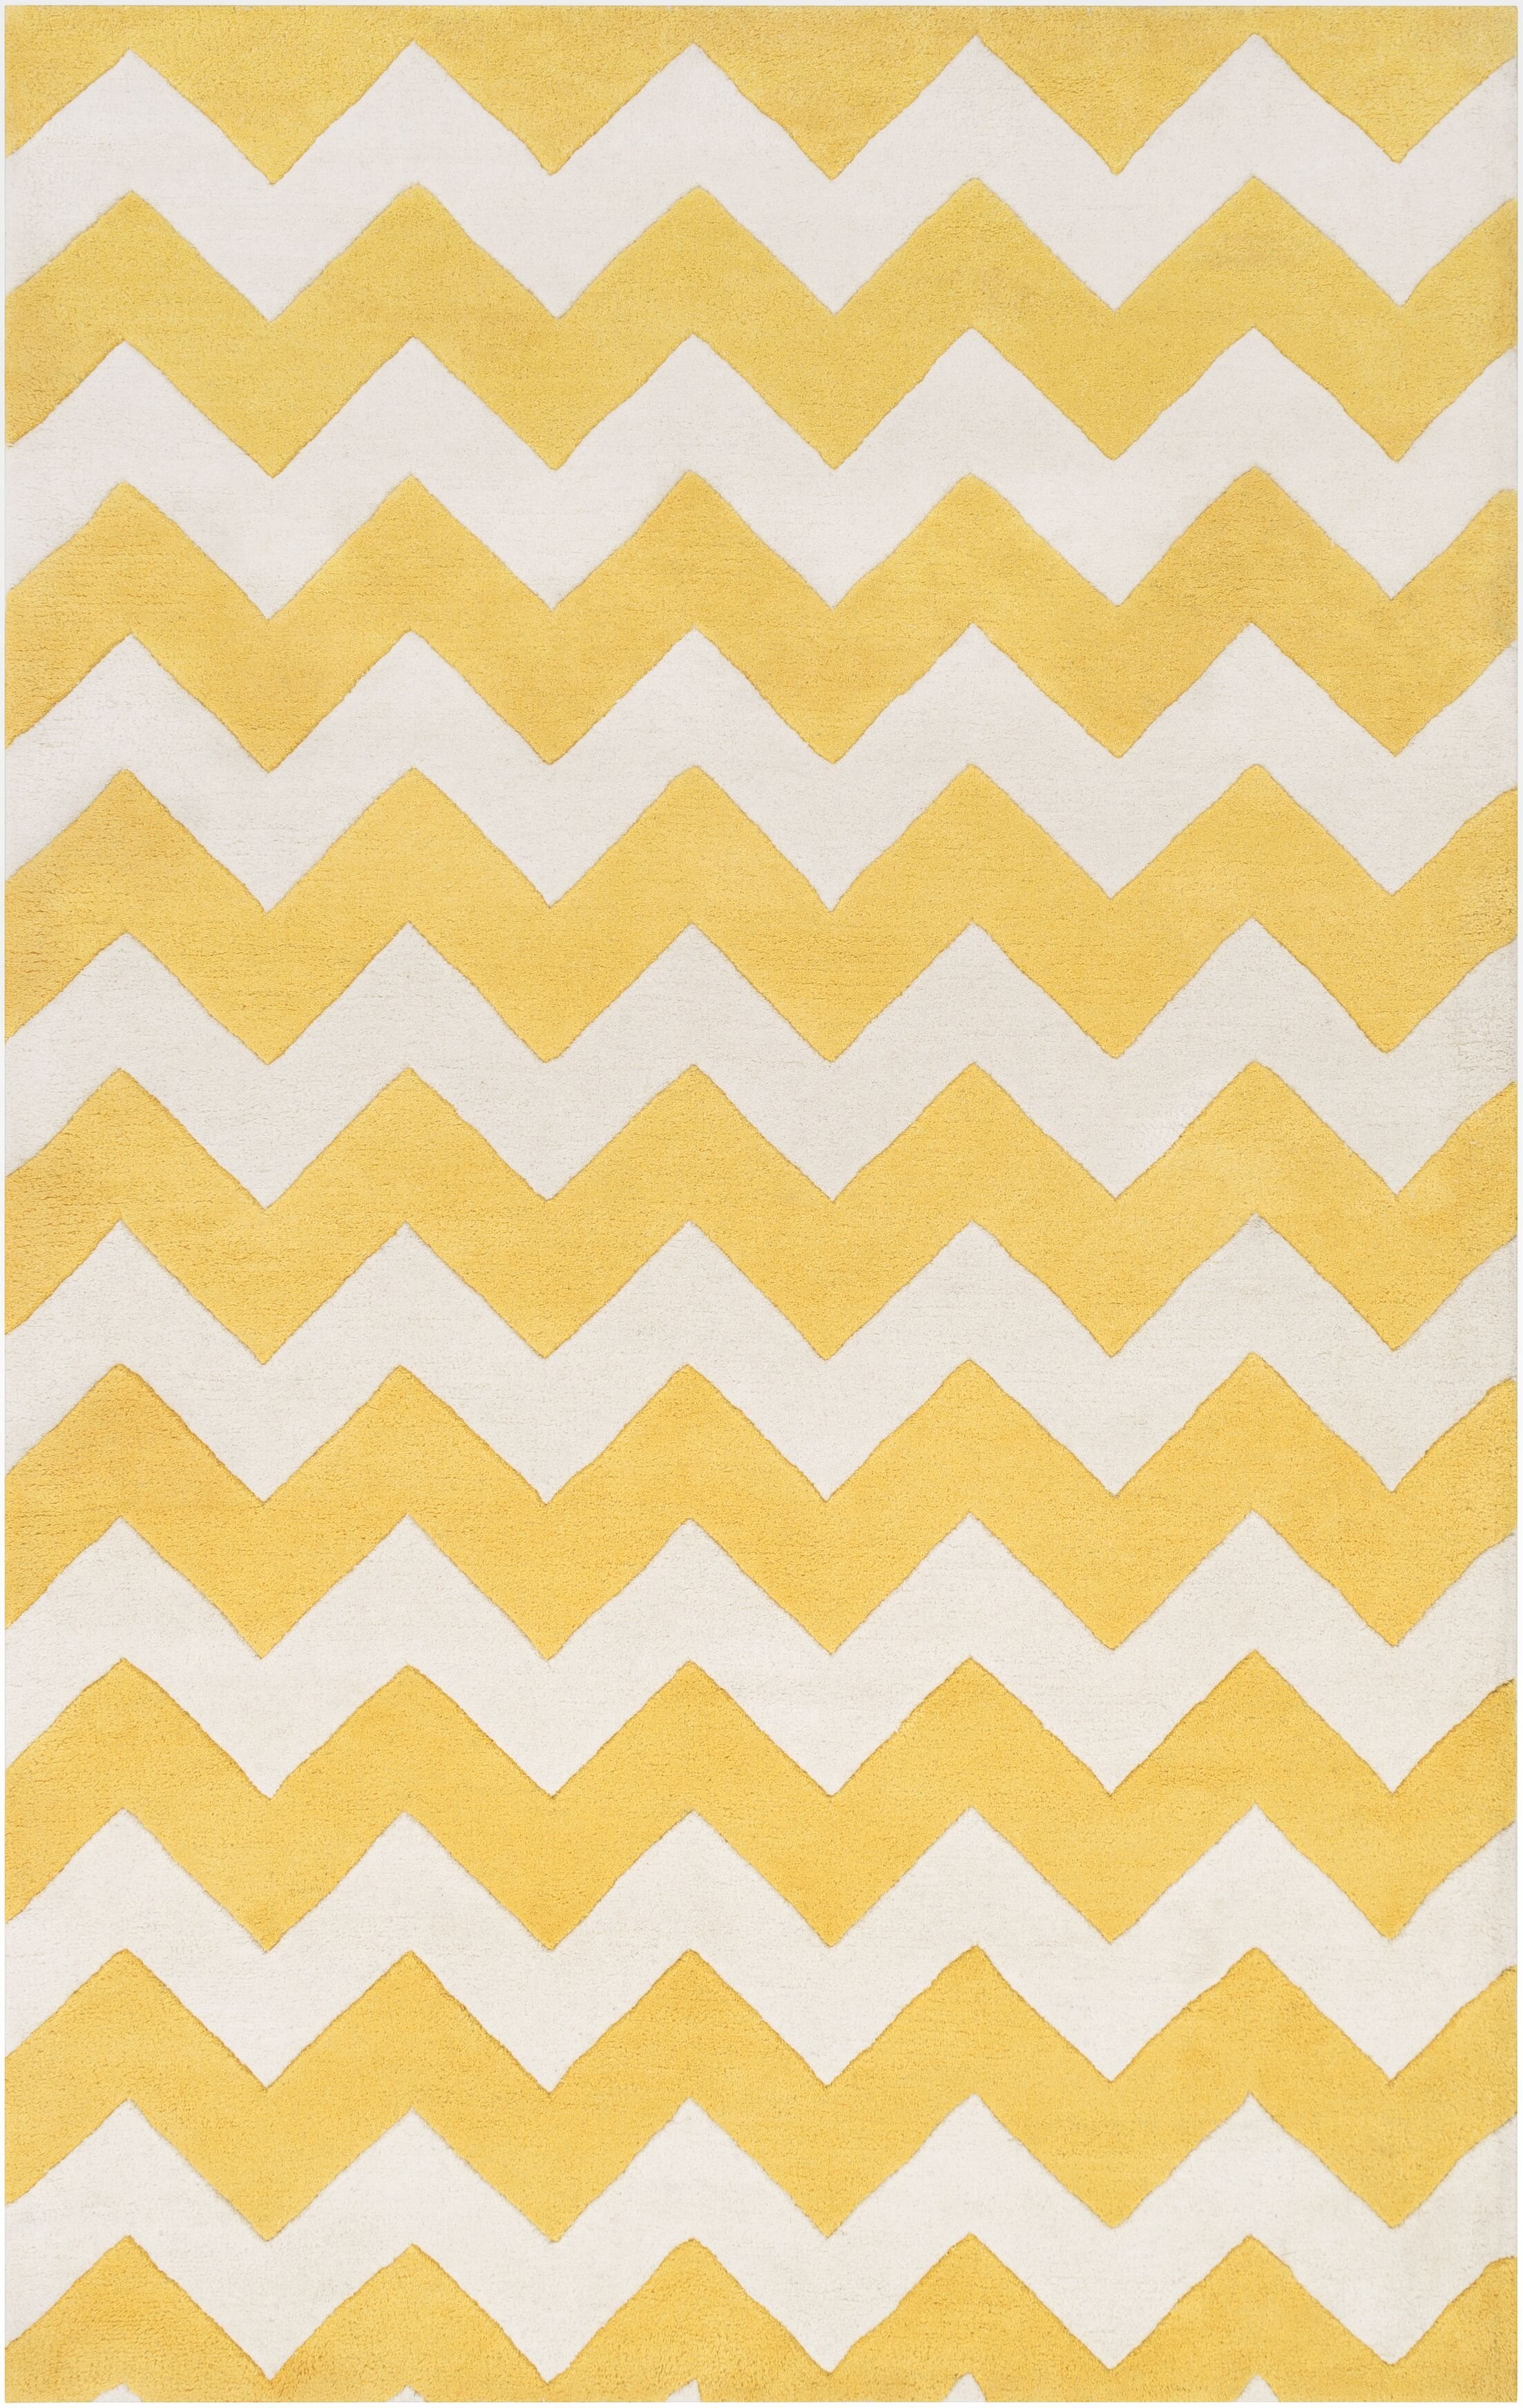 Ayler Yellow/Ivory Chevron Area Rug Rug Size: Rectangle 9' x 13'